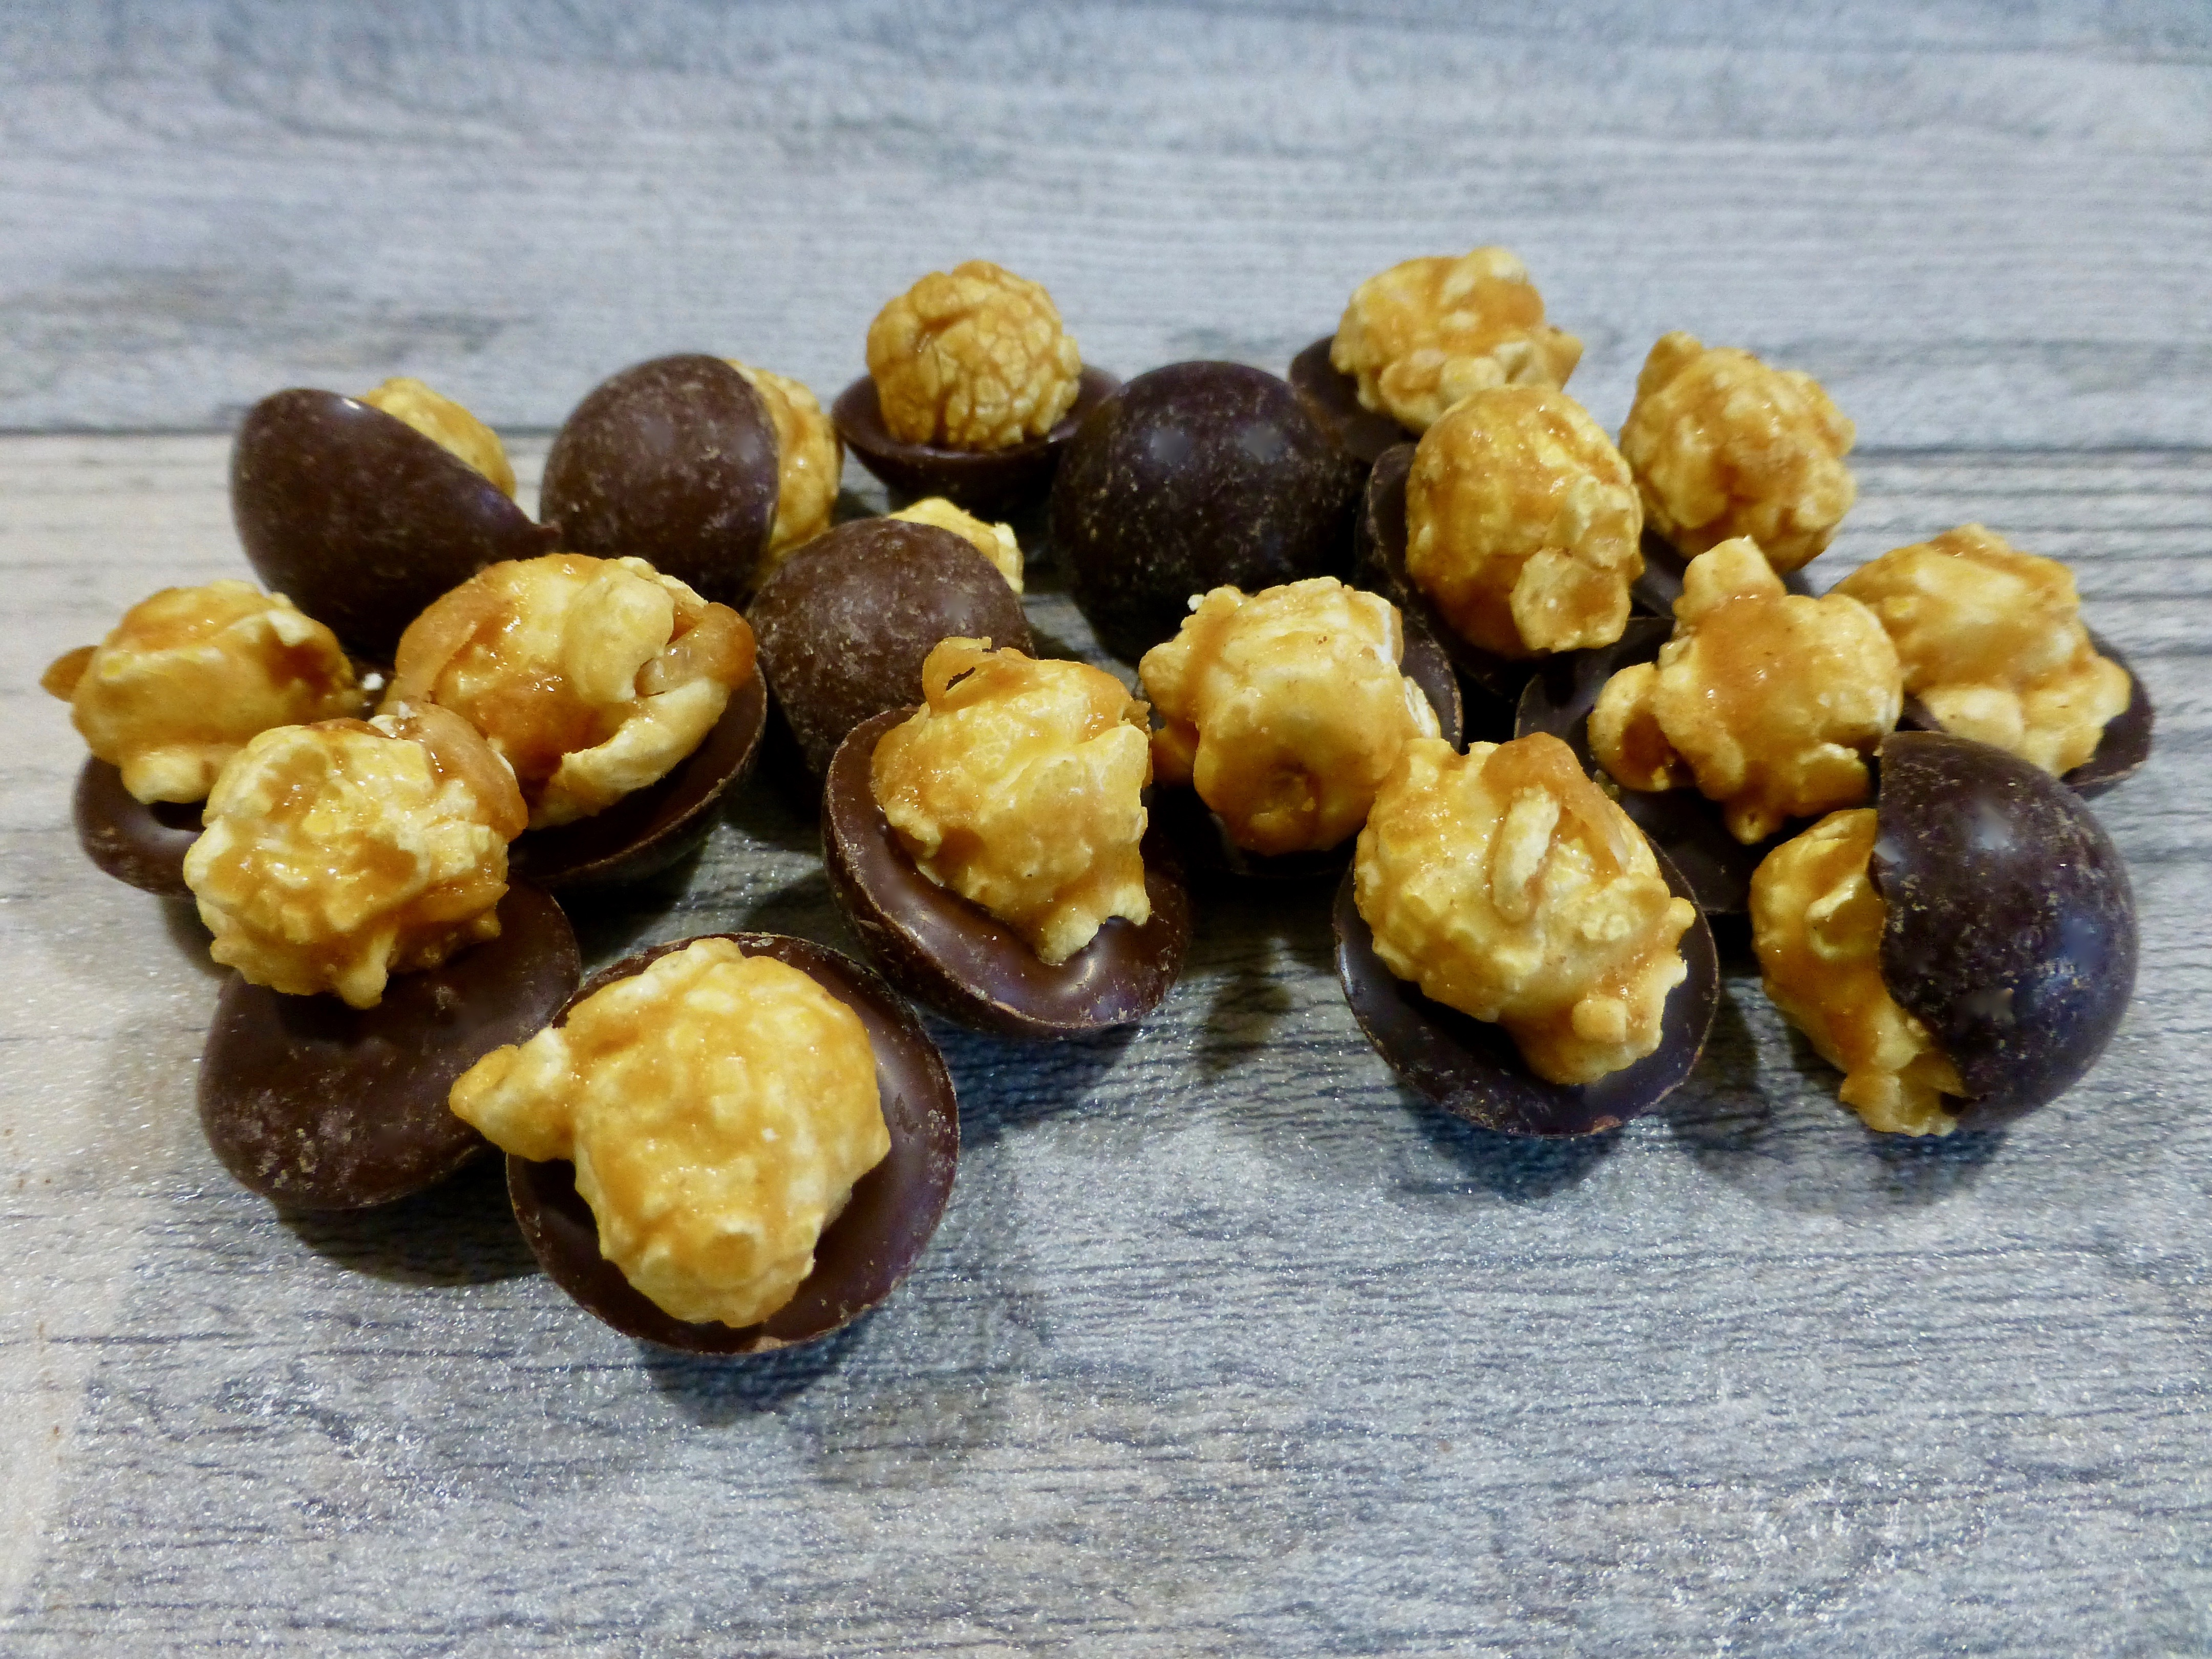 Joe & Seph's Popcorn Bites Milk Chocolate and Dark Chocolate